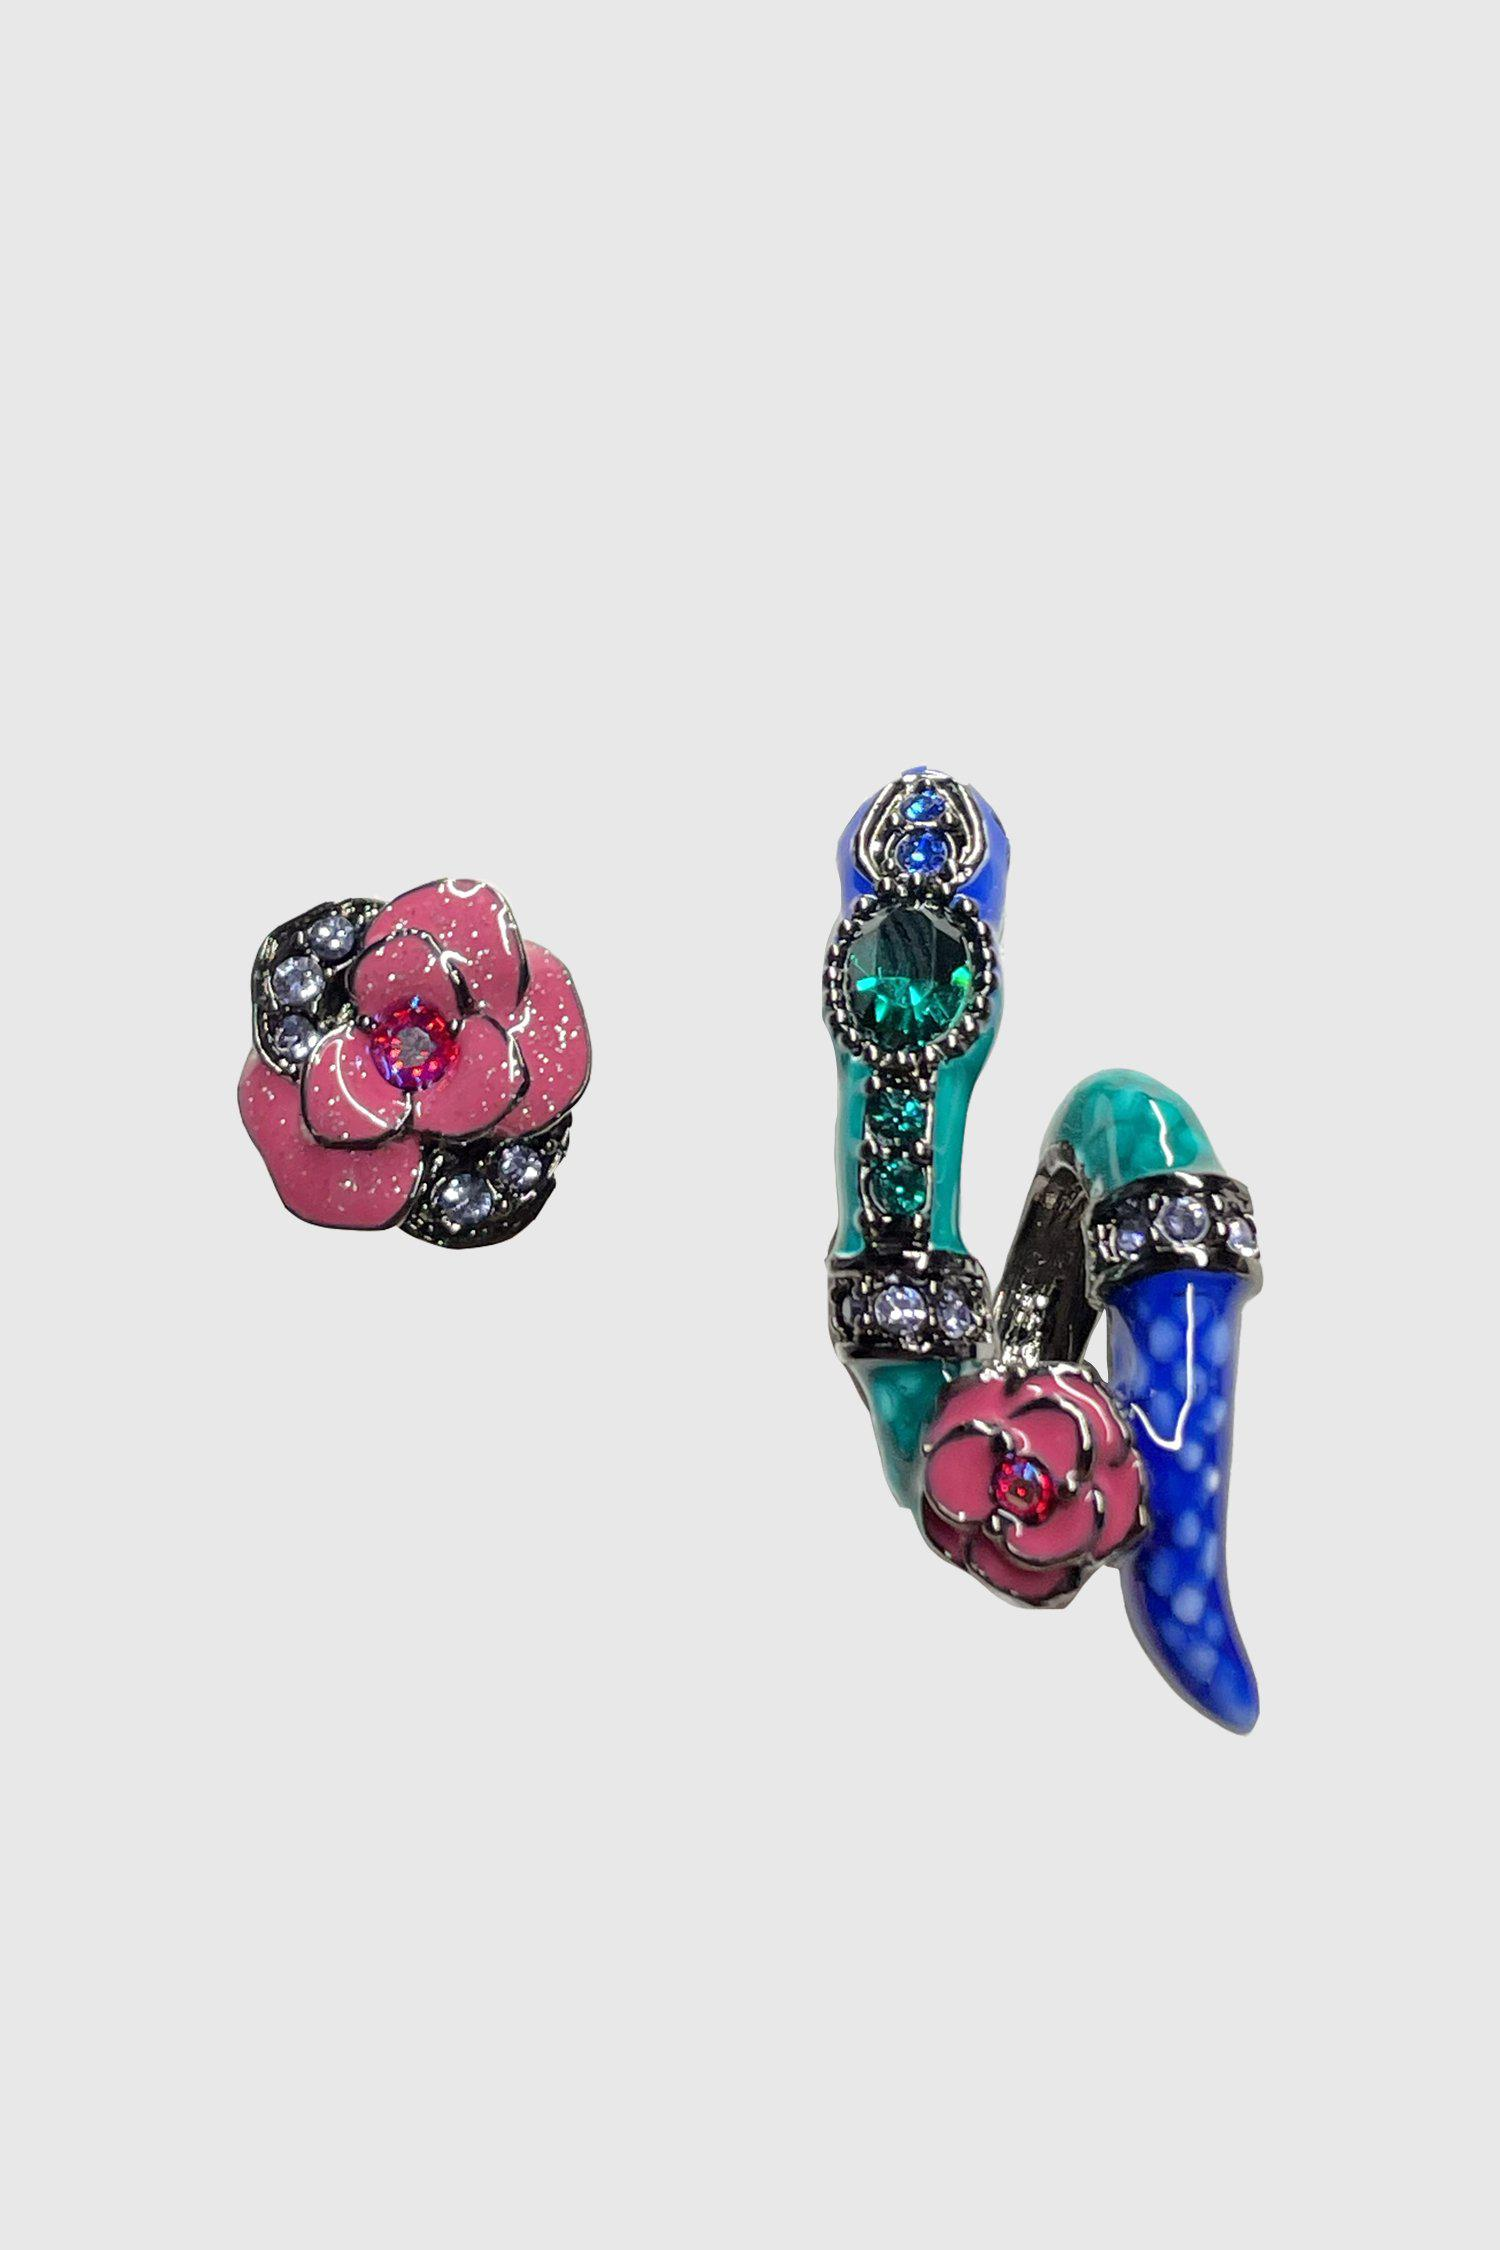 Snake and Rose Mismatched Earrings Black